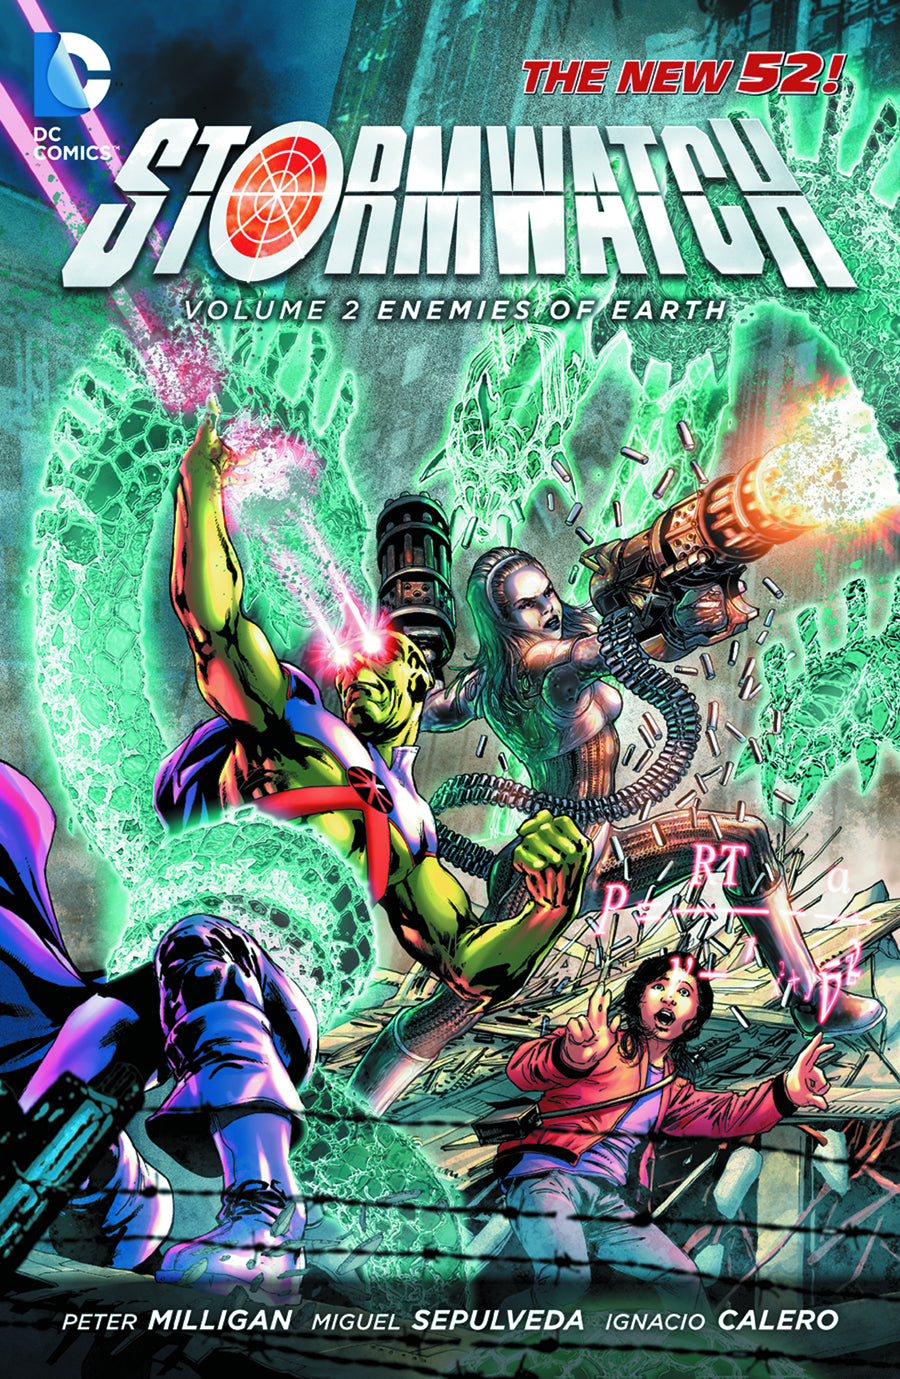 STORMWATCH TP VOL 02 ENEMIES OF THE EARTH (N52) | Game Master's Emporium (The New GME)